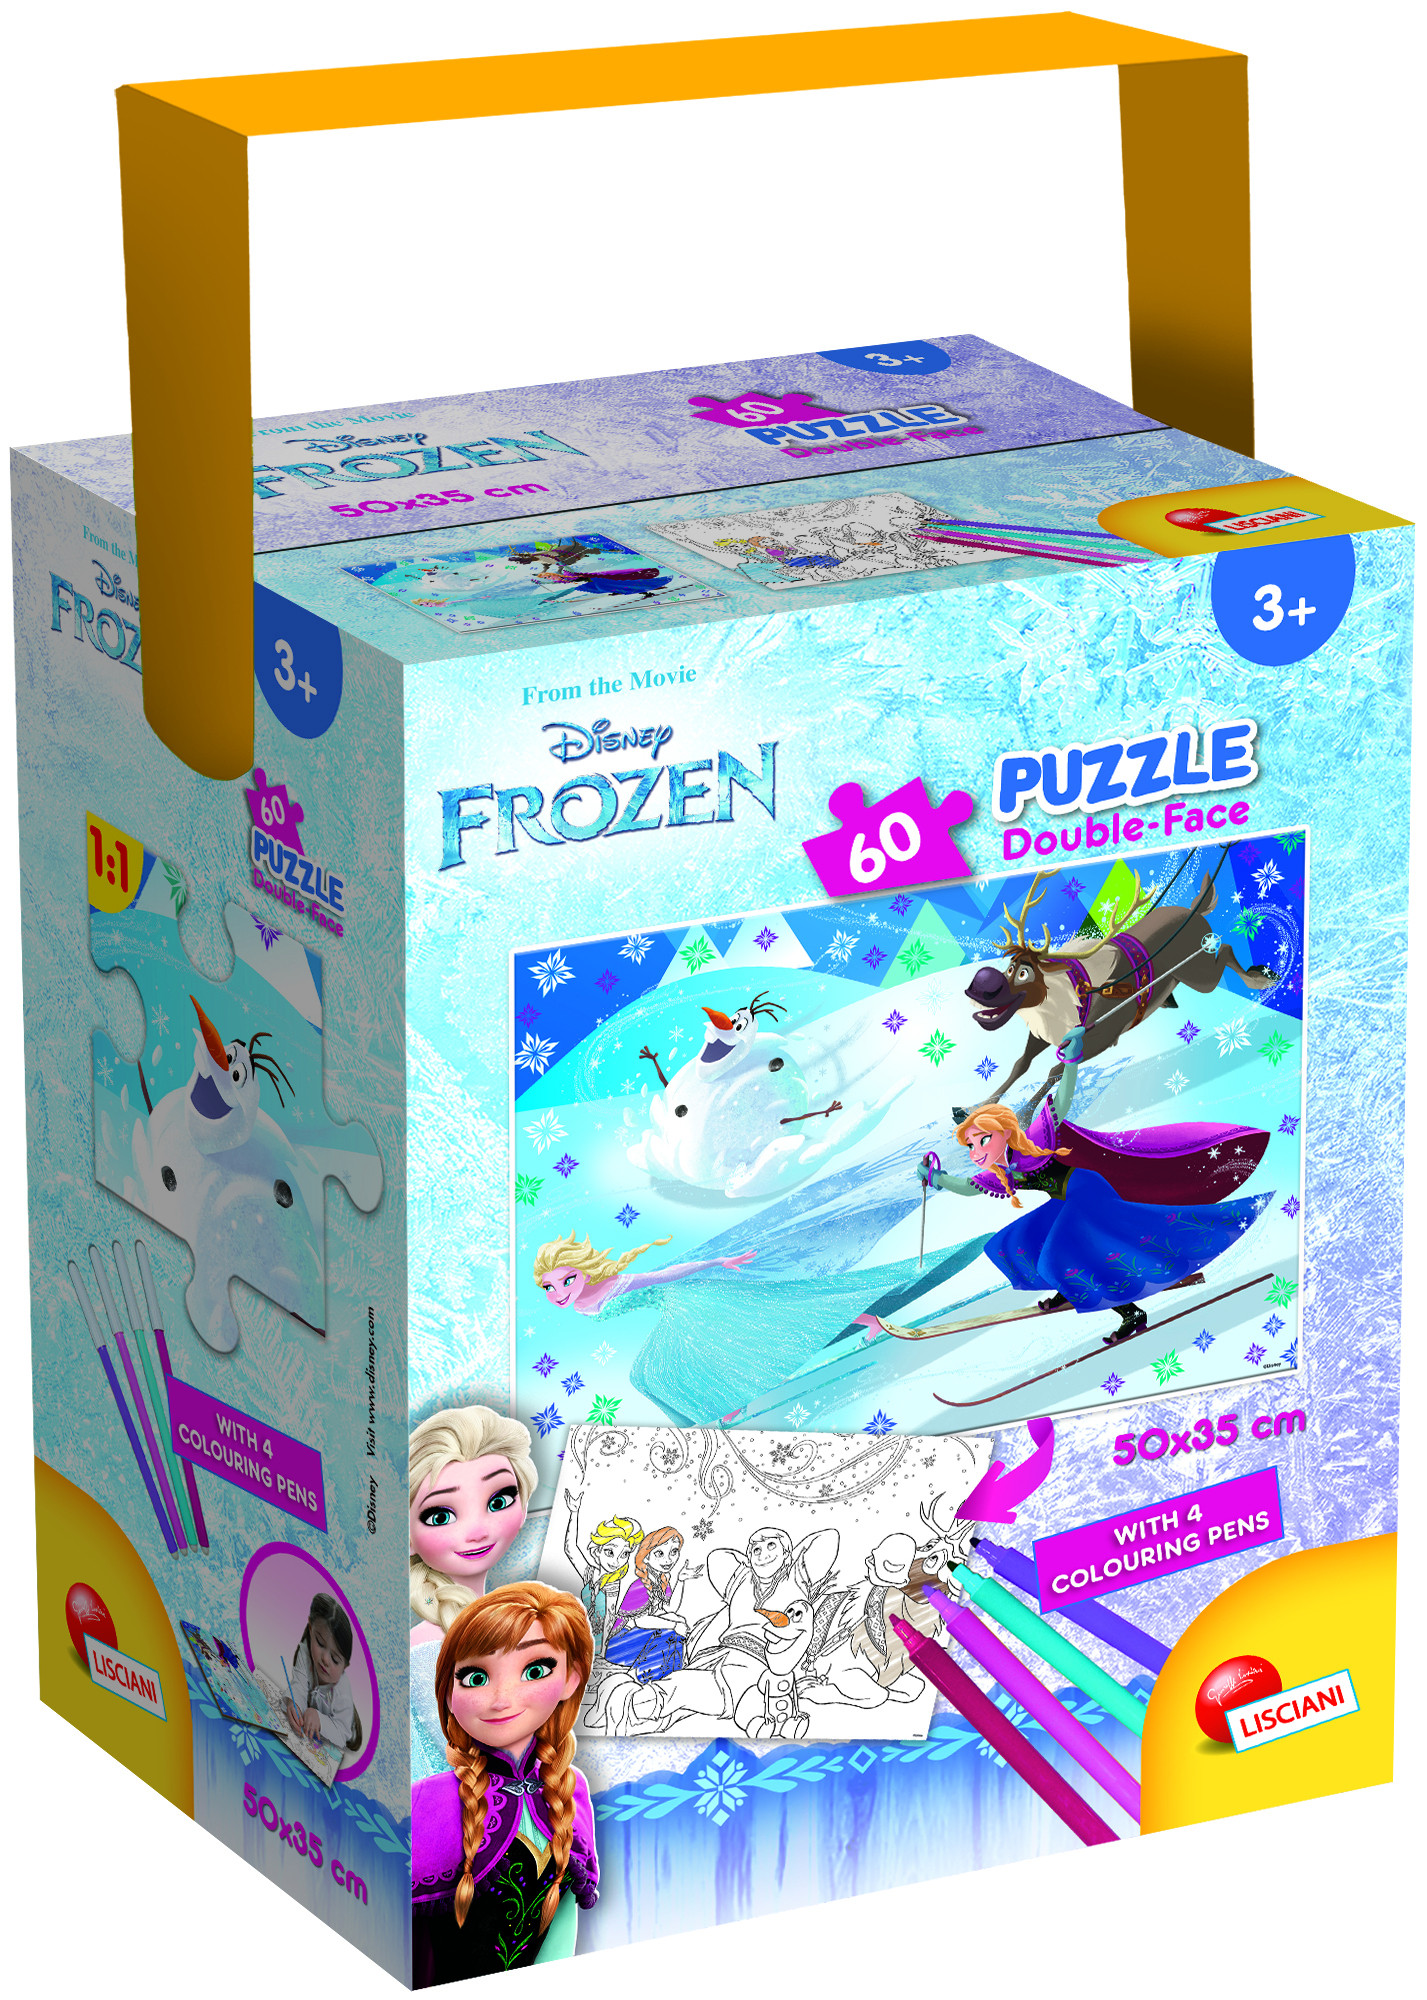 PUZZLE IN A TUB MINI 35X50 60 PEZZI FROZEN (65264)